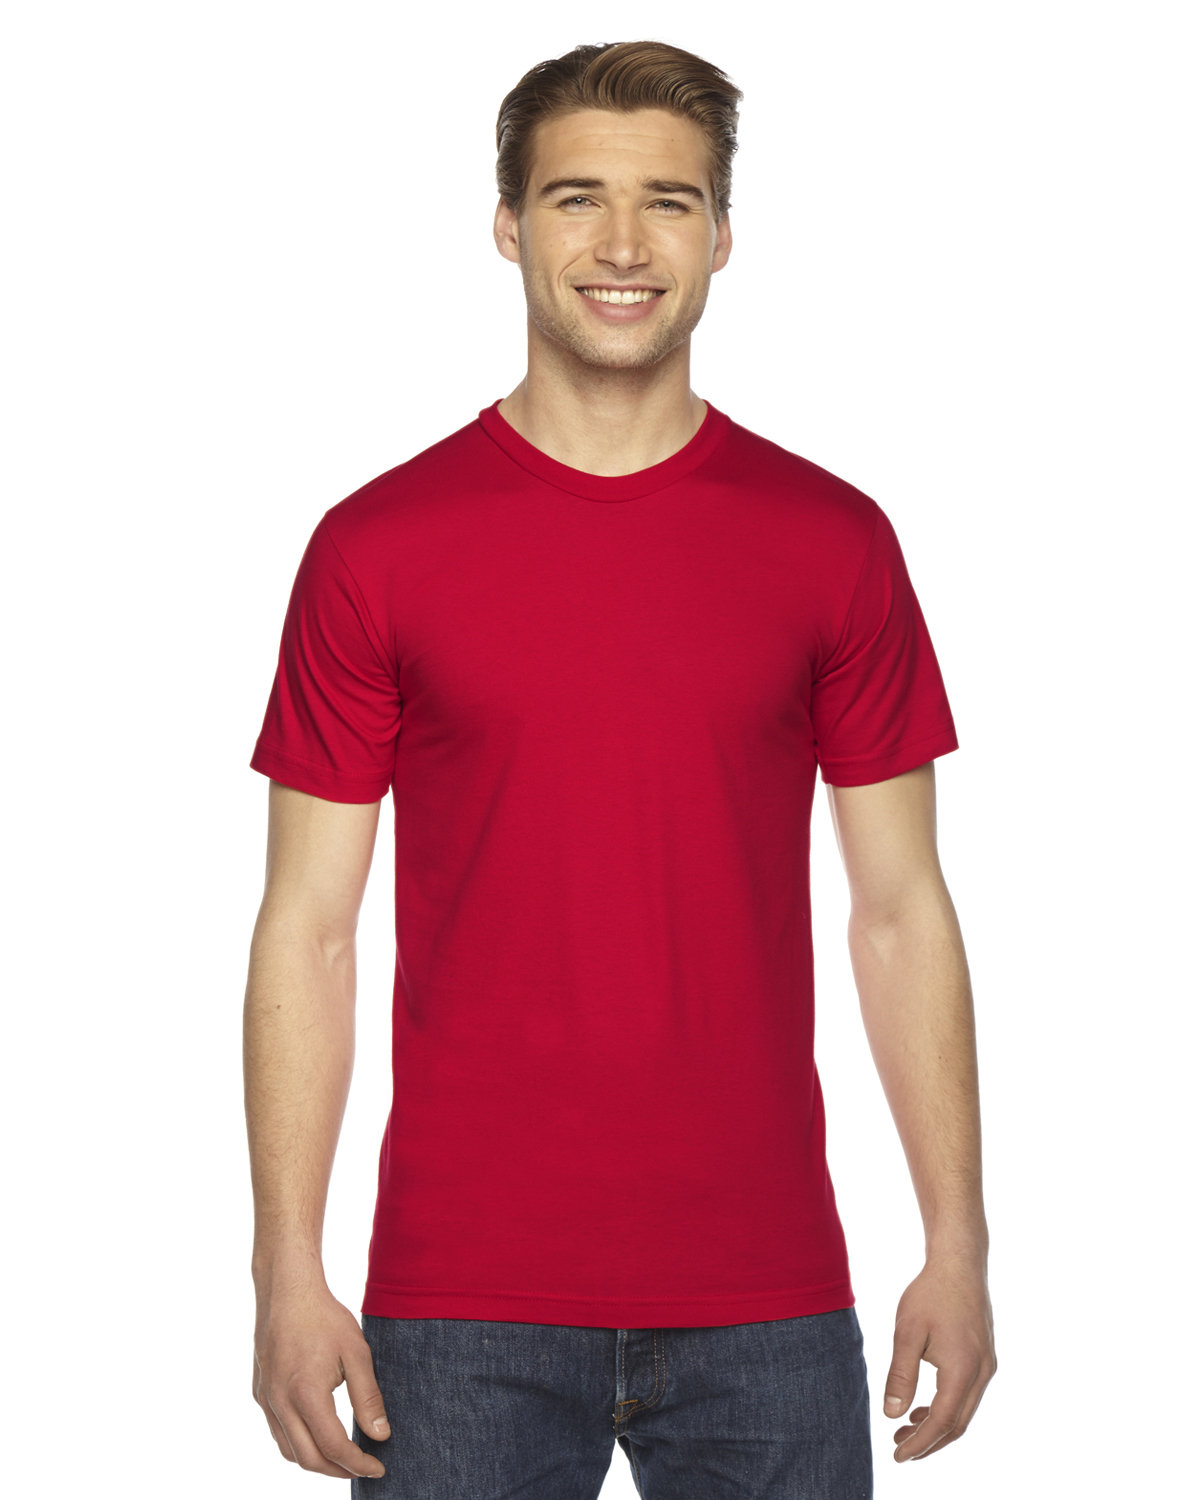 American Apparel Unisex Fine Jersey USA Made T-Shirt RED